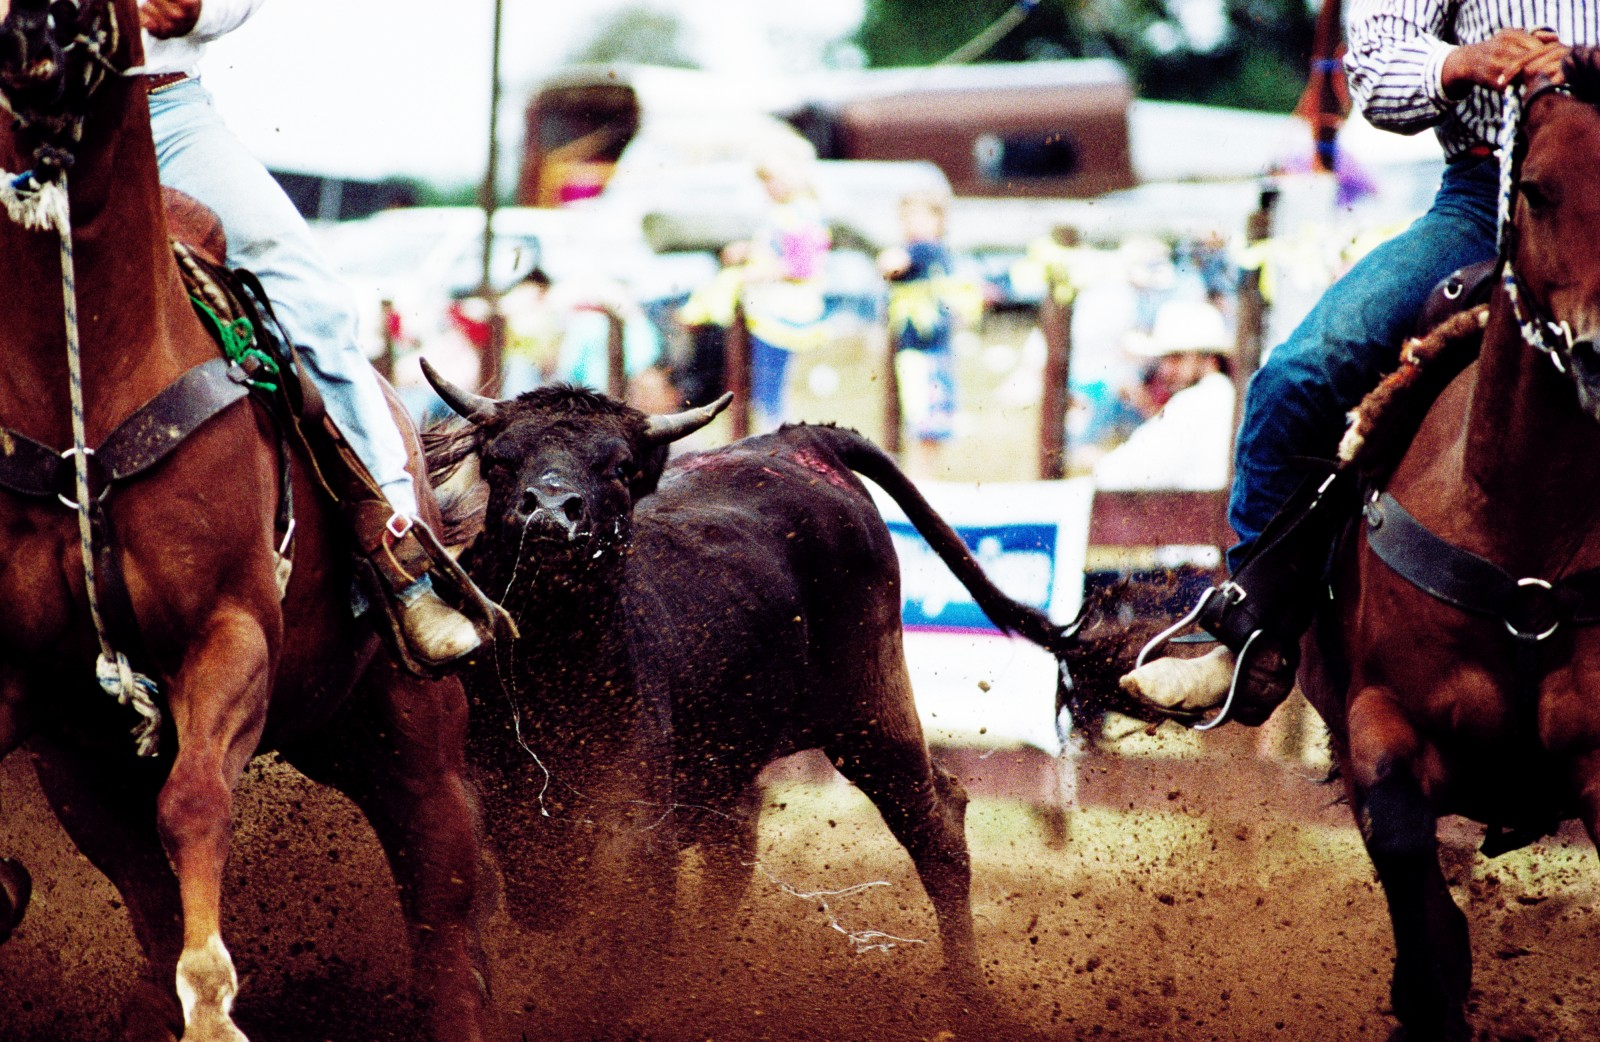 In rodeo, the glamour of the cowboy legend mingles with the brutish realities of dirt, sweat and muscle. Steer wrestling involves the contestant in a high-speed leap from horse to steer, followed by a brief tussle in which the cowboy tries to flip the animal on to its side. An assistant, called the hazer, rides beside the steer to keep it running straight, but even with the odds stacked two against one, the steer can still outsmart his would-be captors. This one stopped dead in his tracks, leaving the cowboys to ride futilely past.